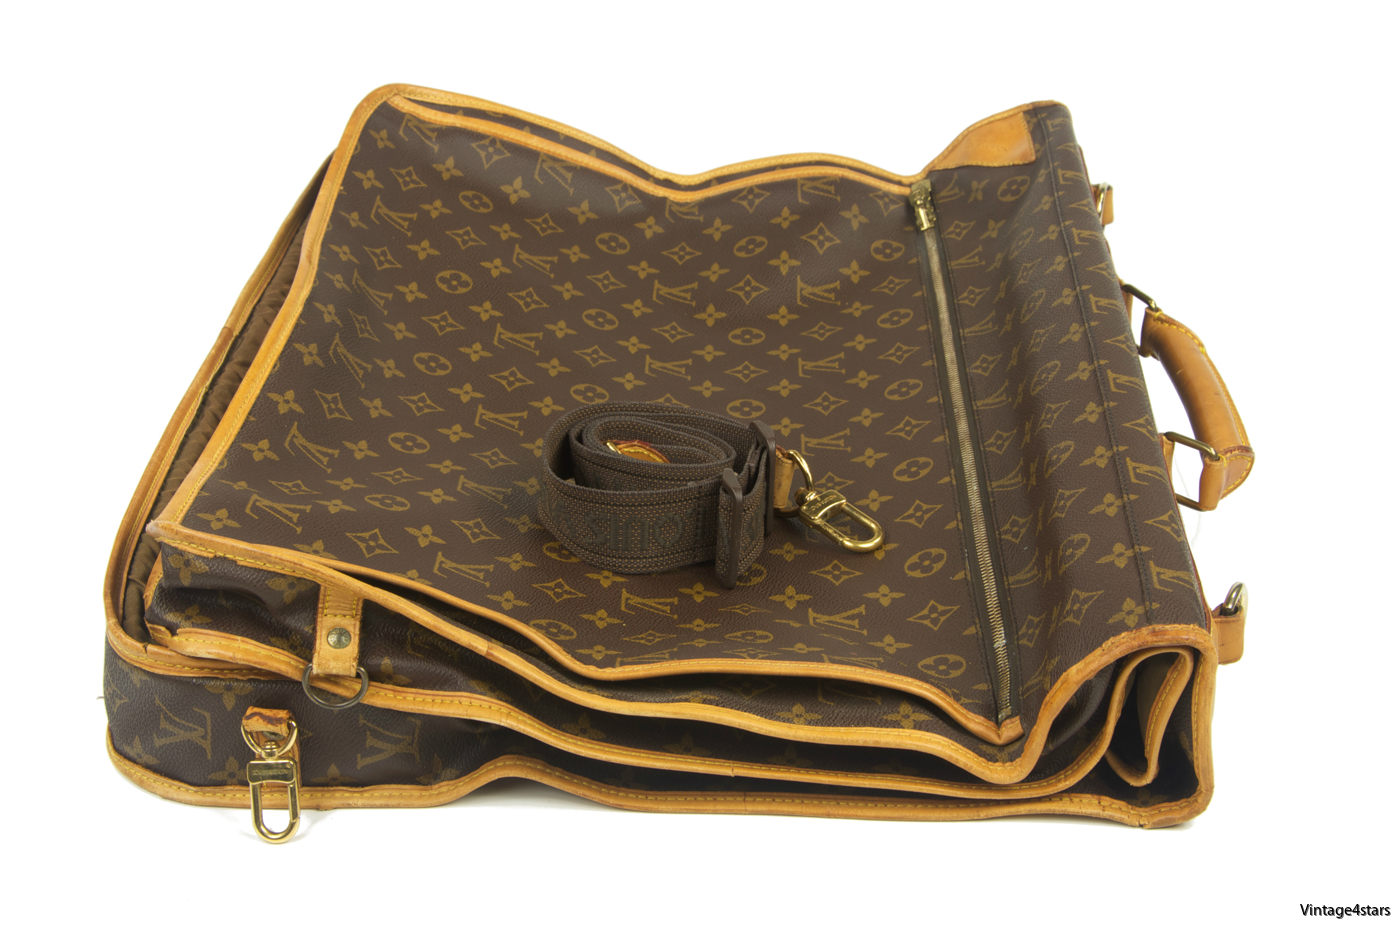 Louis Vuitton Garment Bag 3 Hangers Monogram 06